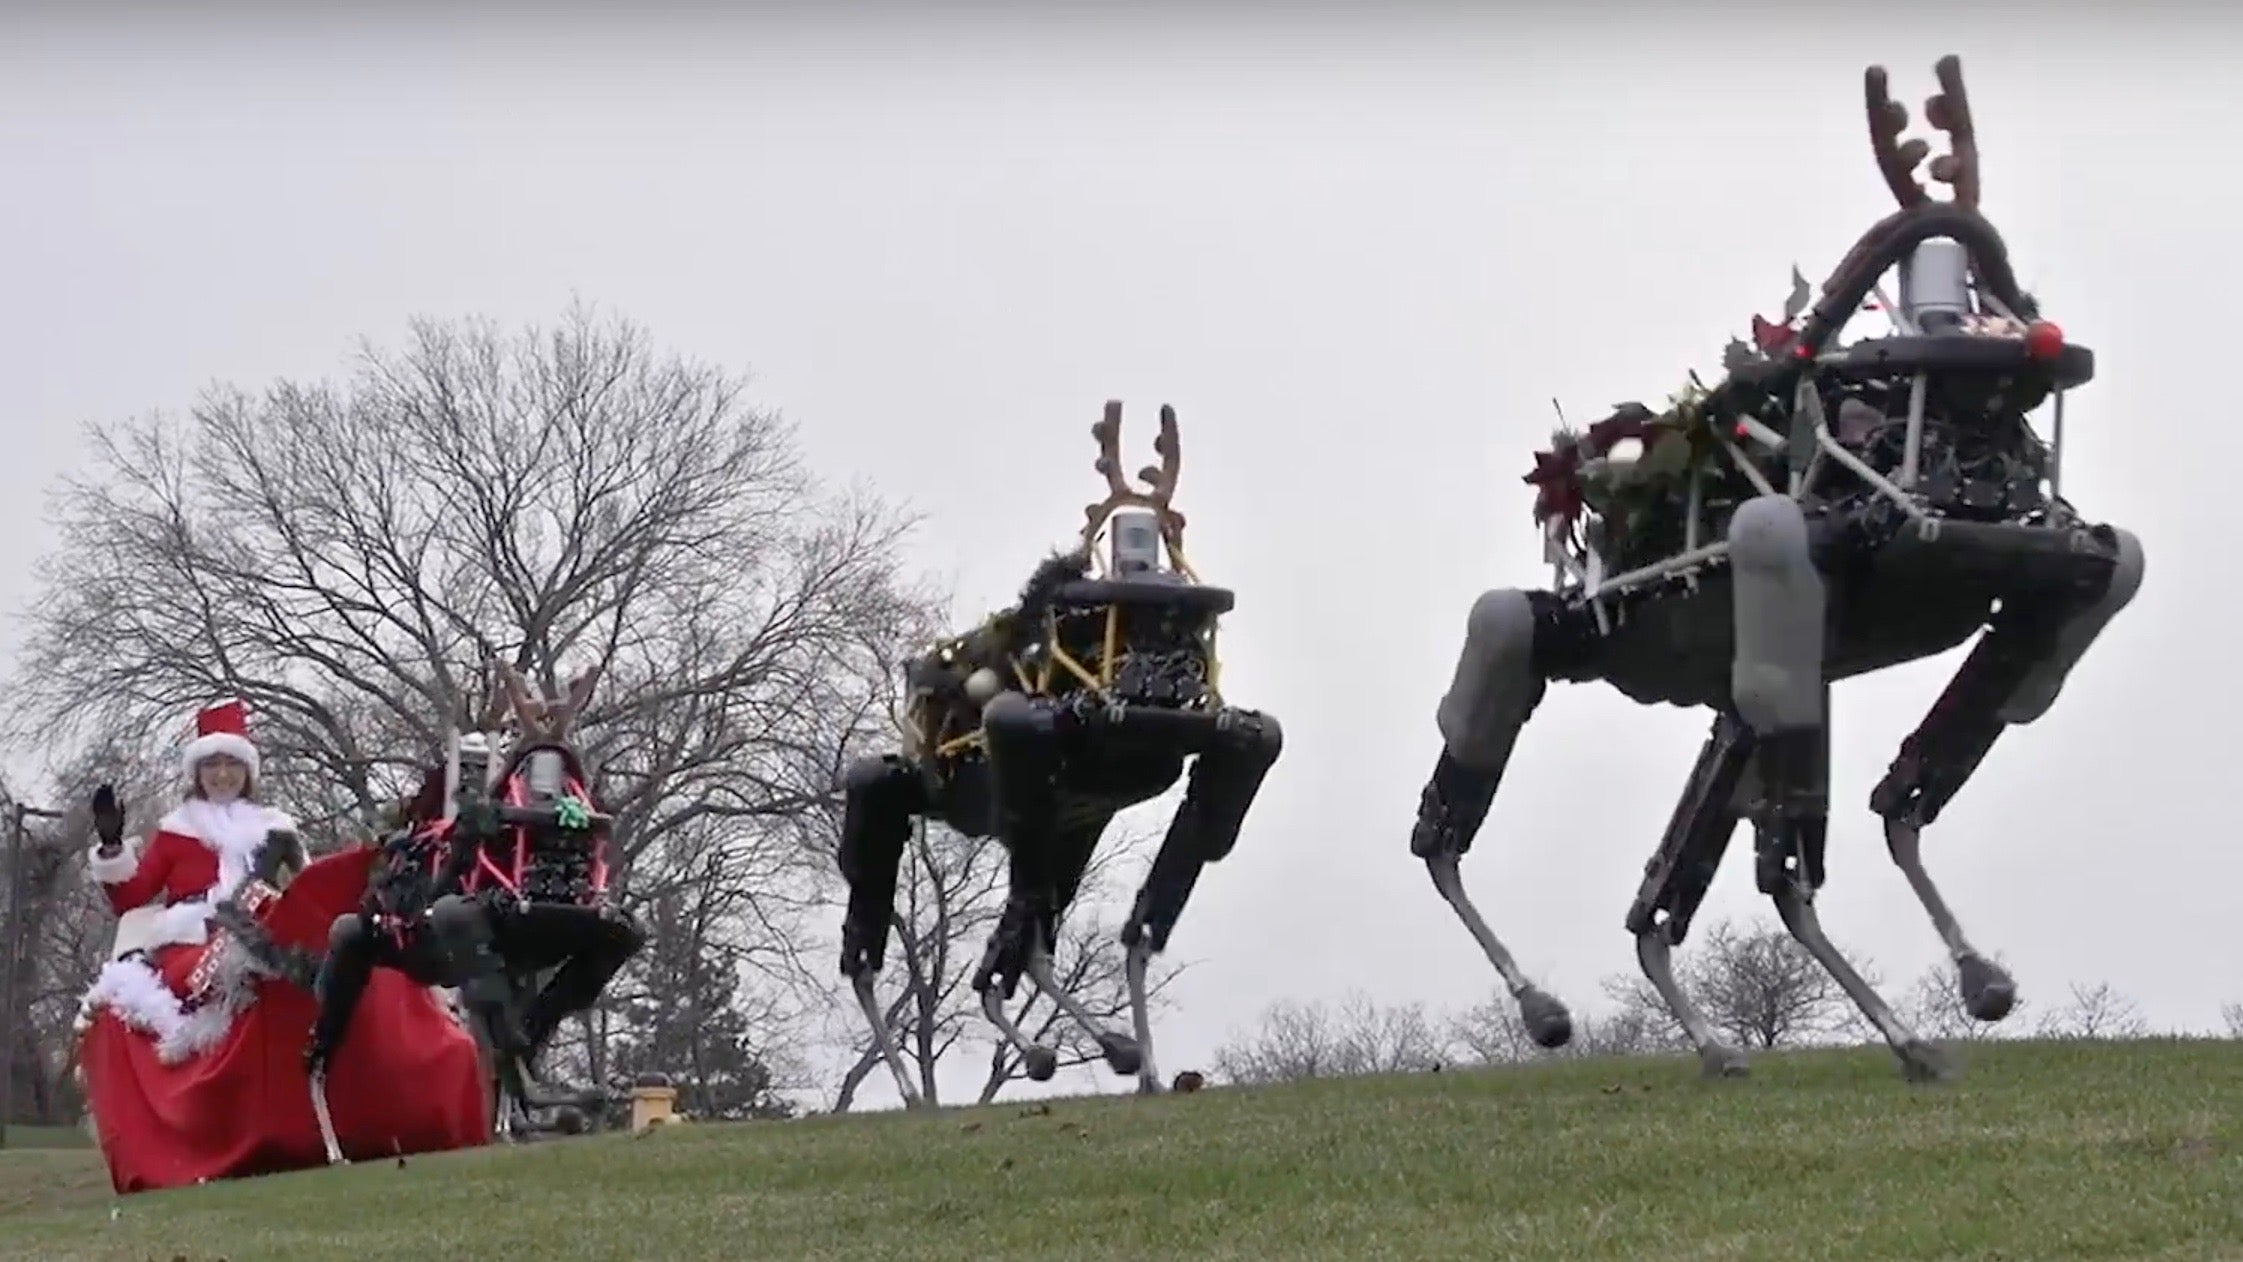 Four-legged military robots became Christmas reindeer